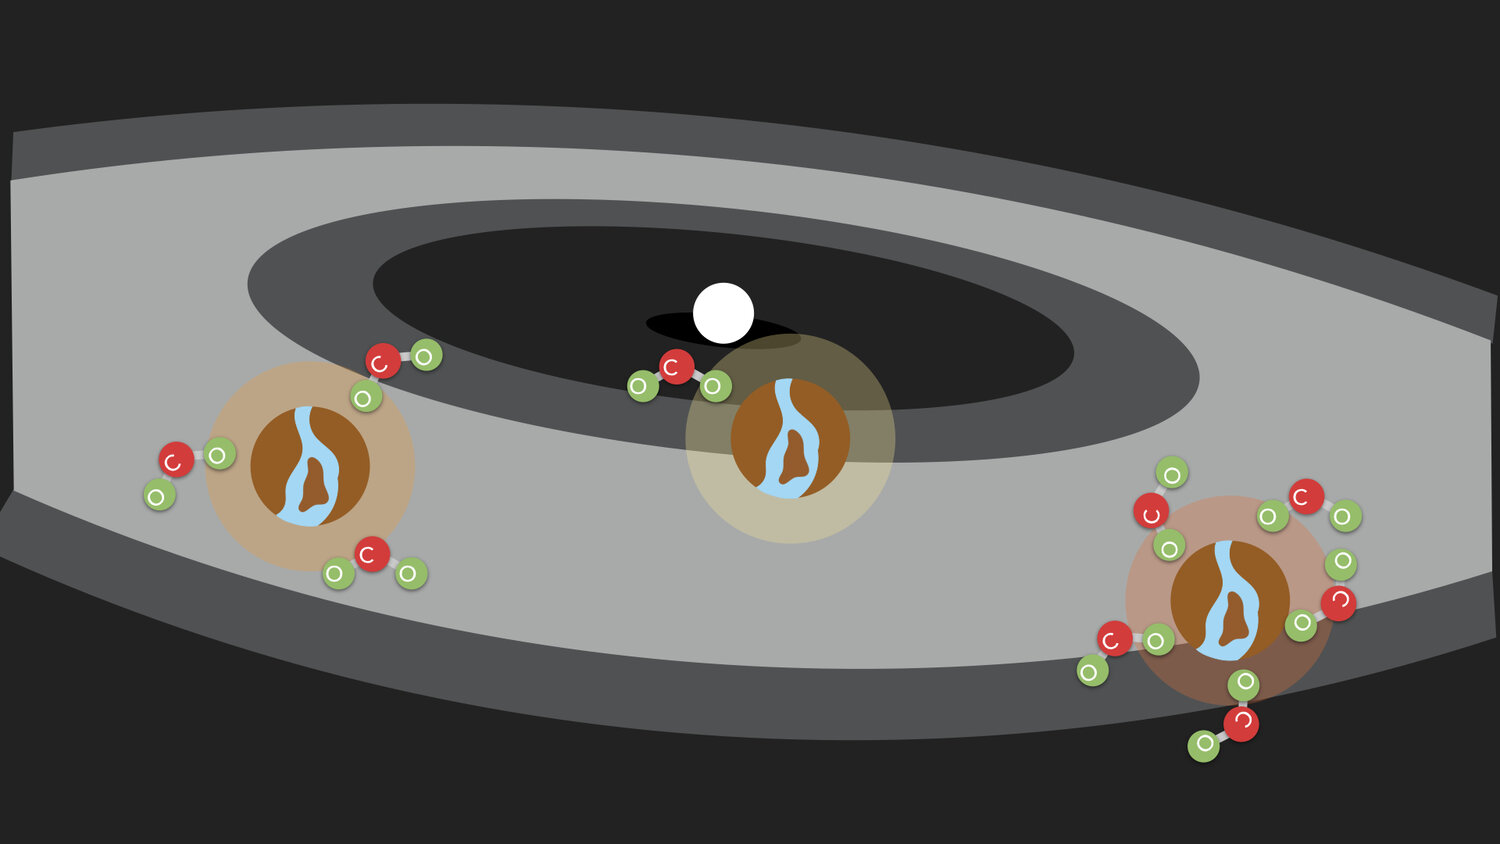 Within the habitable zone, the Earth can adjust the level of carbon dioxide in the atmosphere to keep surface conditions comfortable.